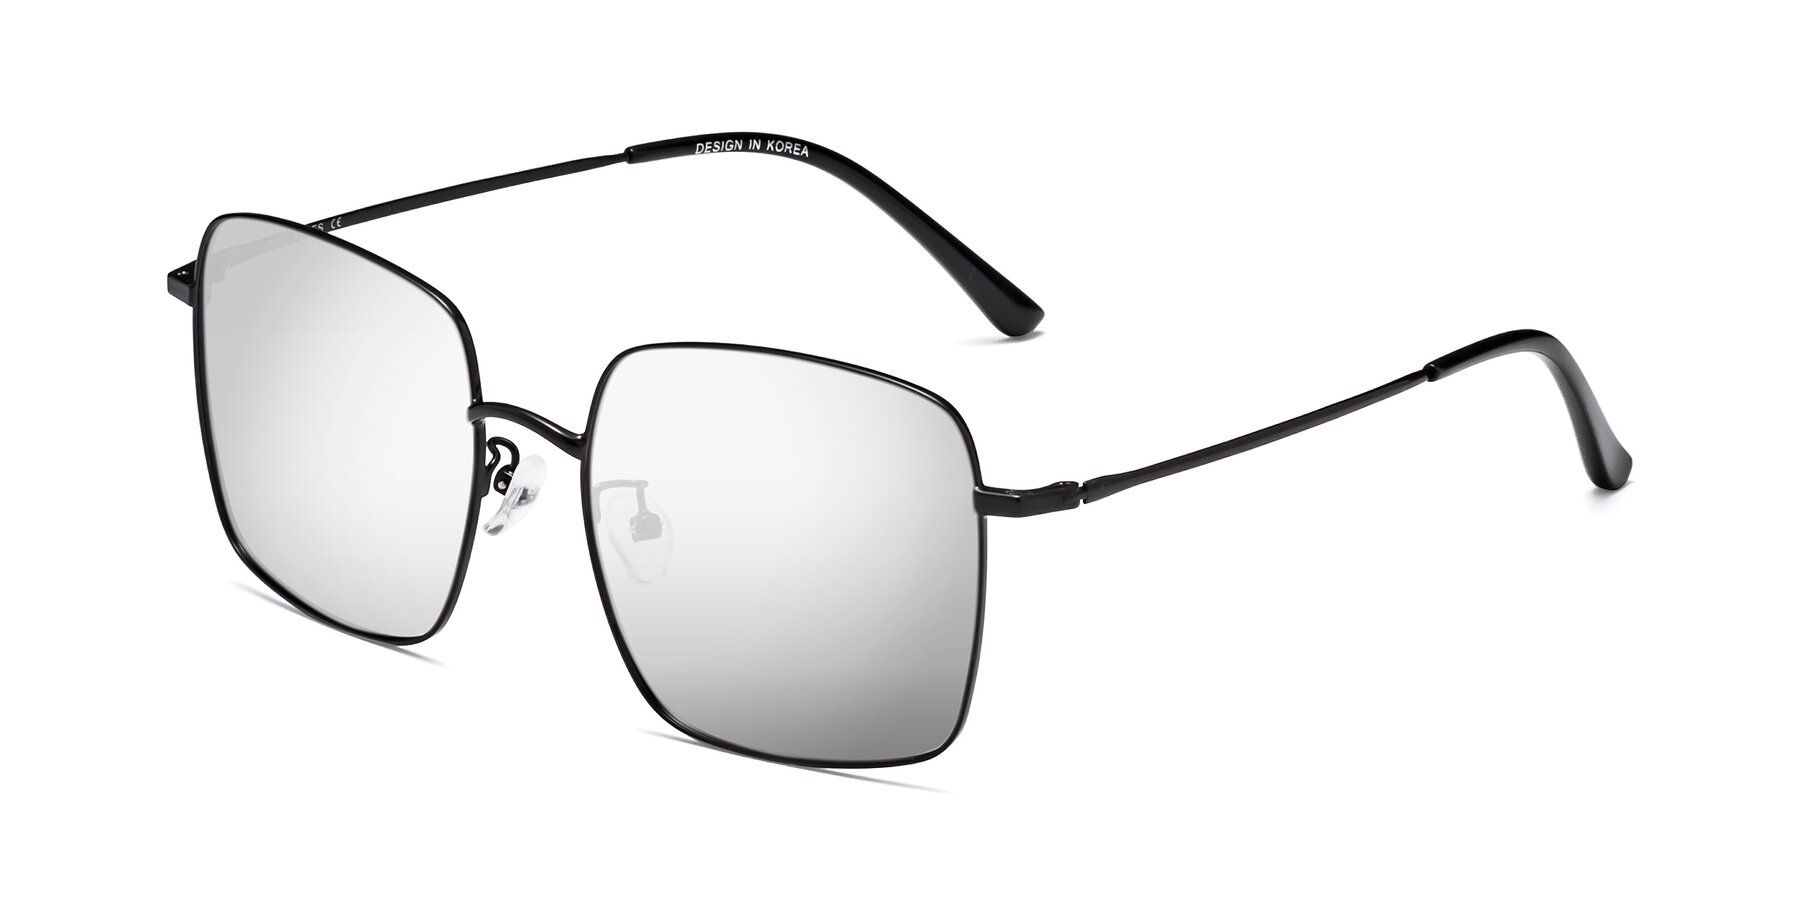 Angle of 18008 in Black with Silver Mirrored Lenses